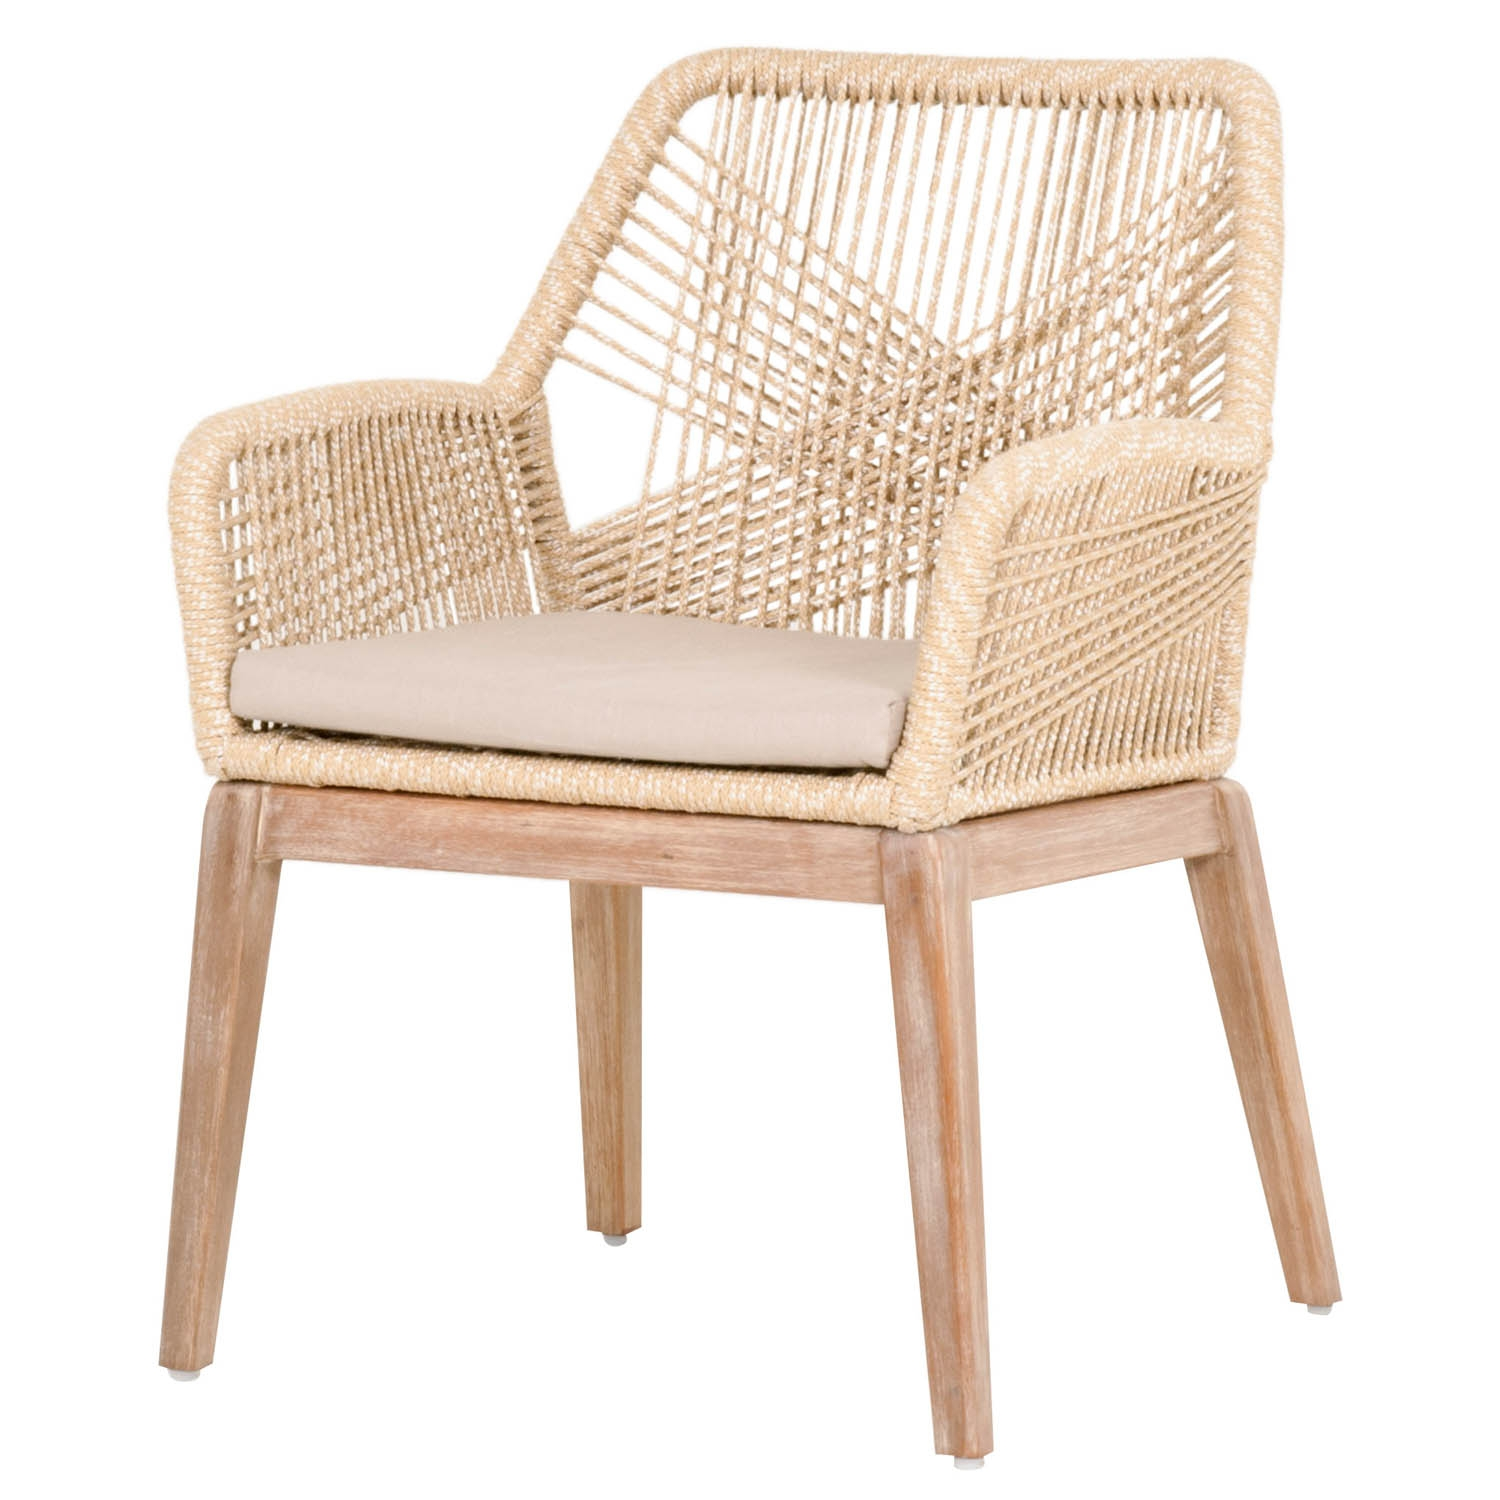 Weave Sand Rope Arm Chair (Set of 2)